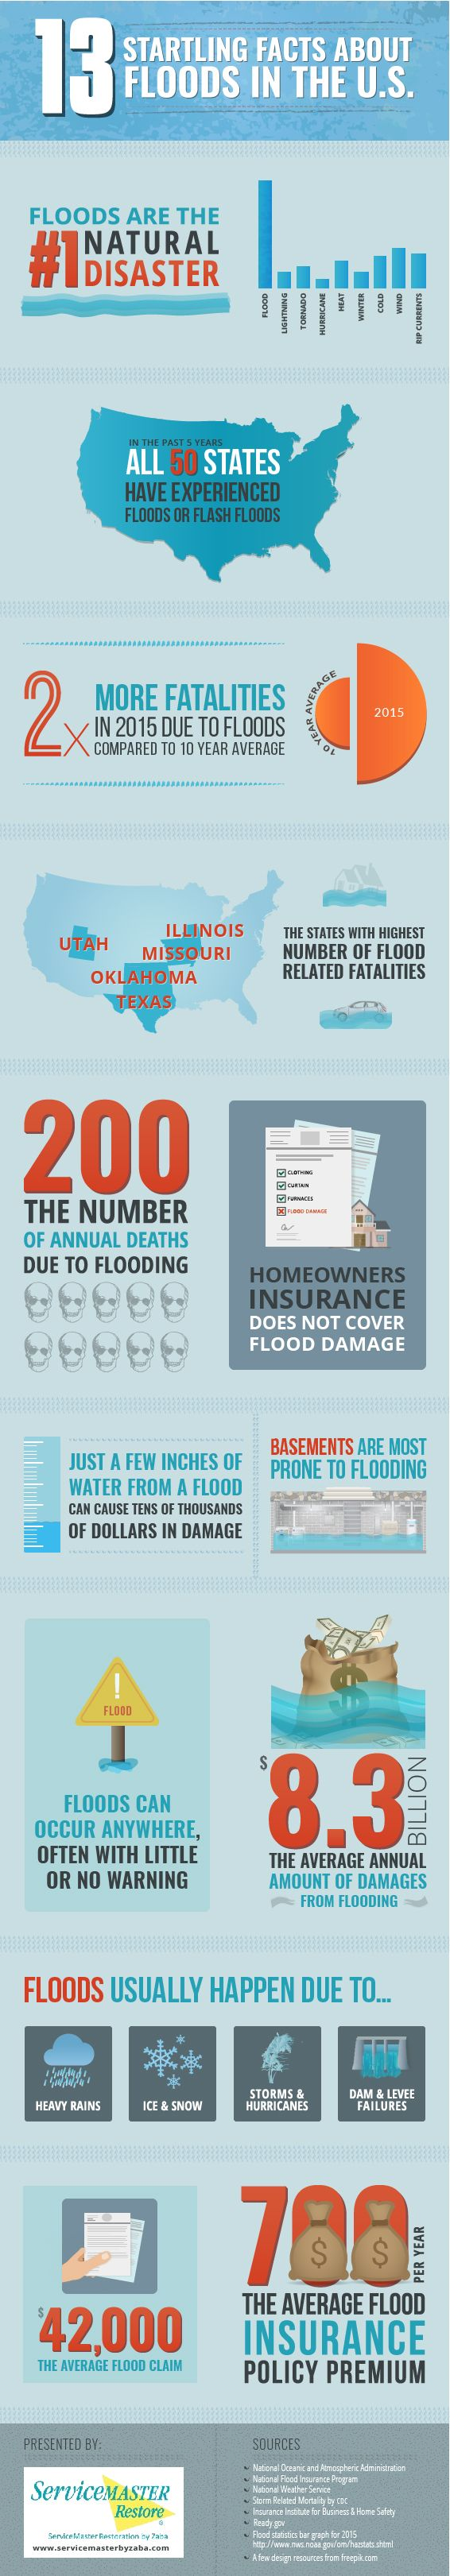 13 Startling Facts About Floods in the U.S.  View More @ http://www.liveinfographic.com/  #13 Startling Facts About Floods in the U.S. Best Infographics brightvalley Free Infographics Infographic infographics  #infographic  #infographics #pintrestinfographics  #pintrest #pintrestpins